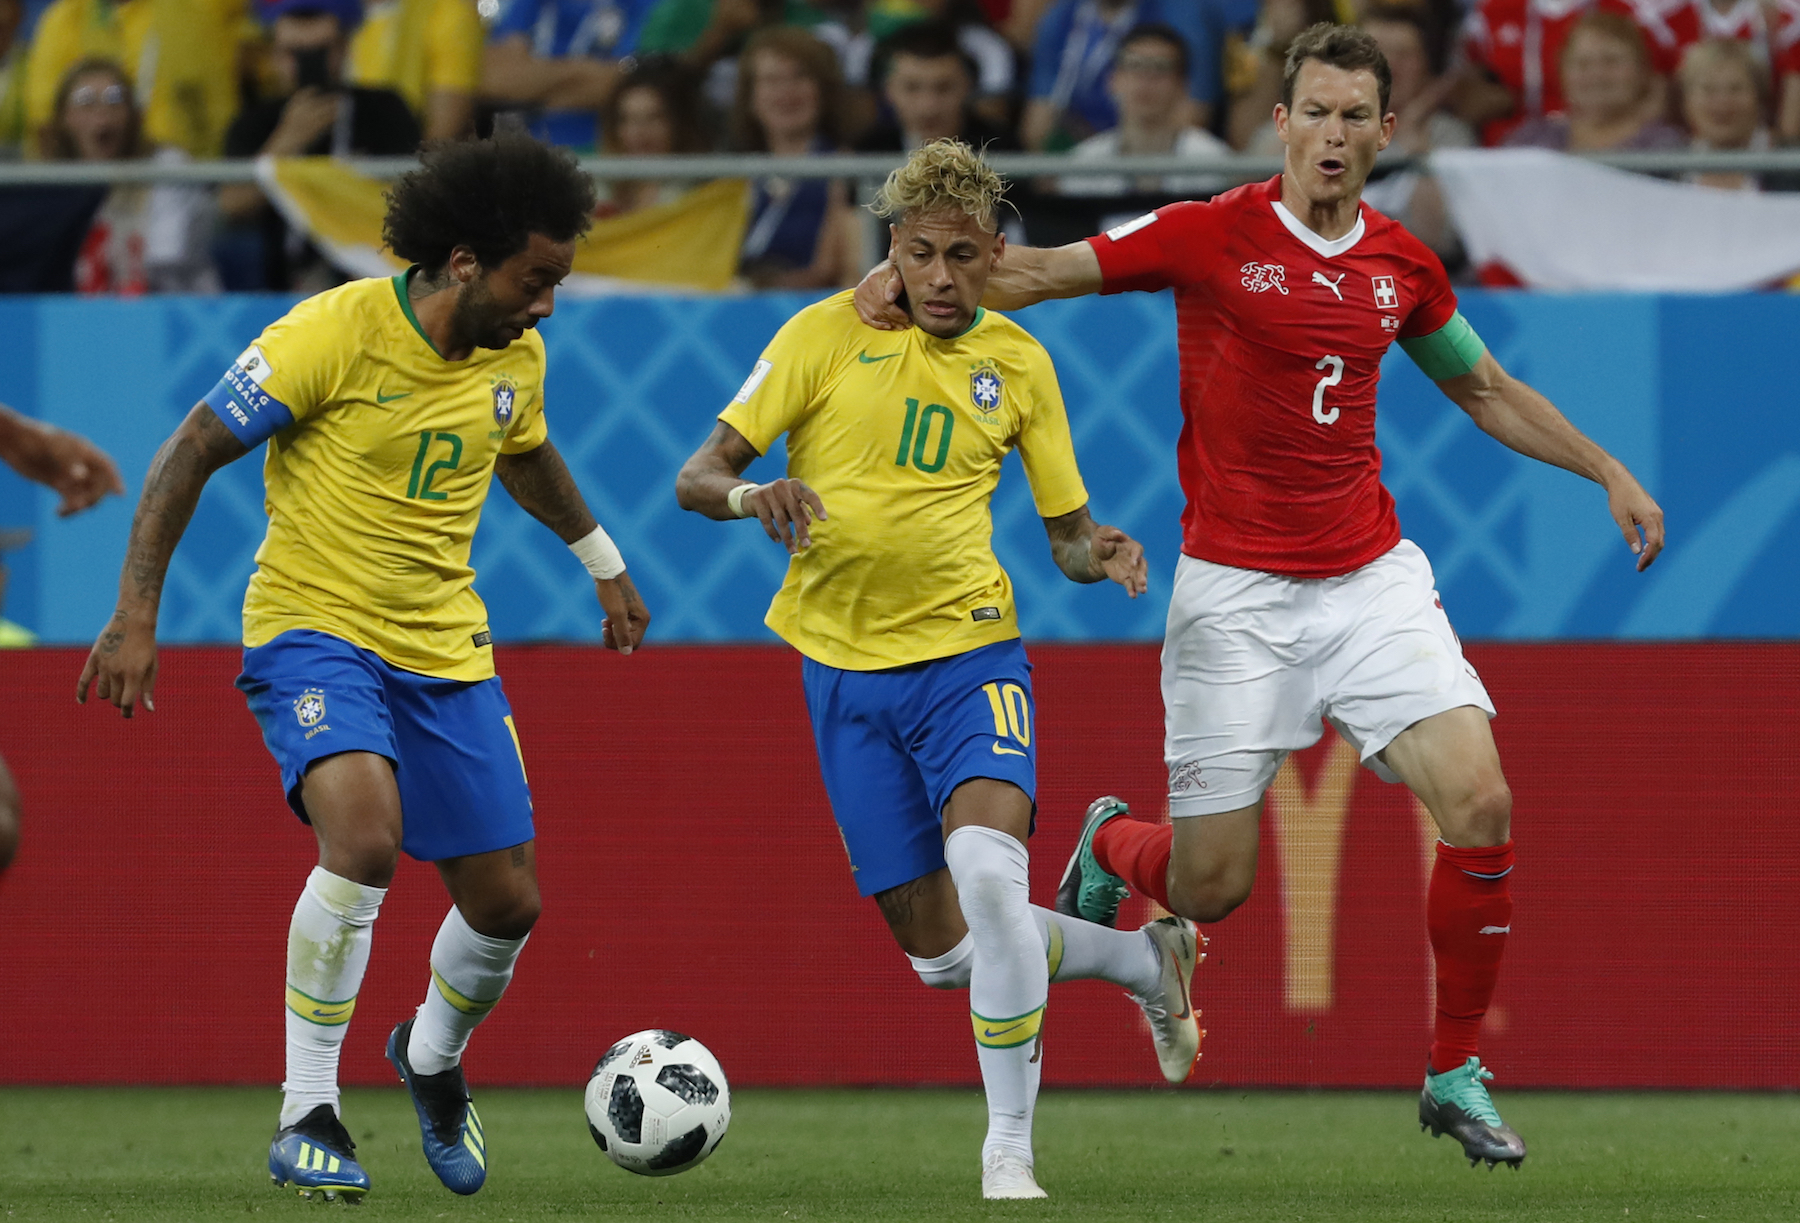 <div class='meta'><div class='origin-logo' data-origin='AP'></div><span class='caption-text' data-credit='AP Photo/Darko Vojinovic'>Brazil's Neymar, center, duels for the ball with Switzerland's Stephan Lichtsteiner, right, during the group E match between Brazil and Switzerland at the 2018 soccer World Cup.</span></div>